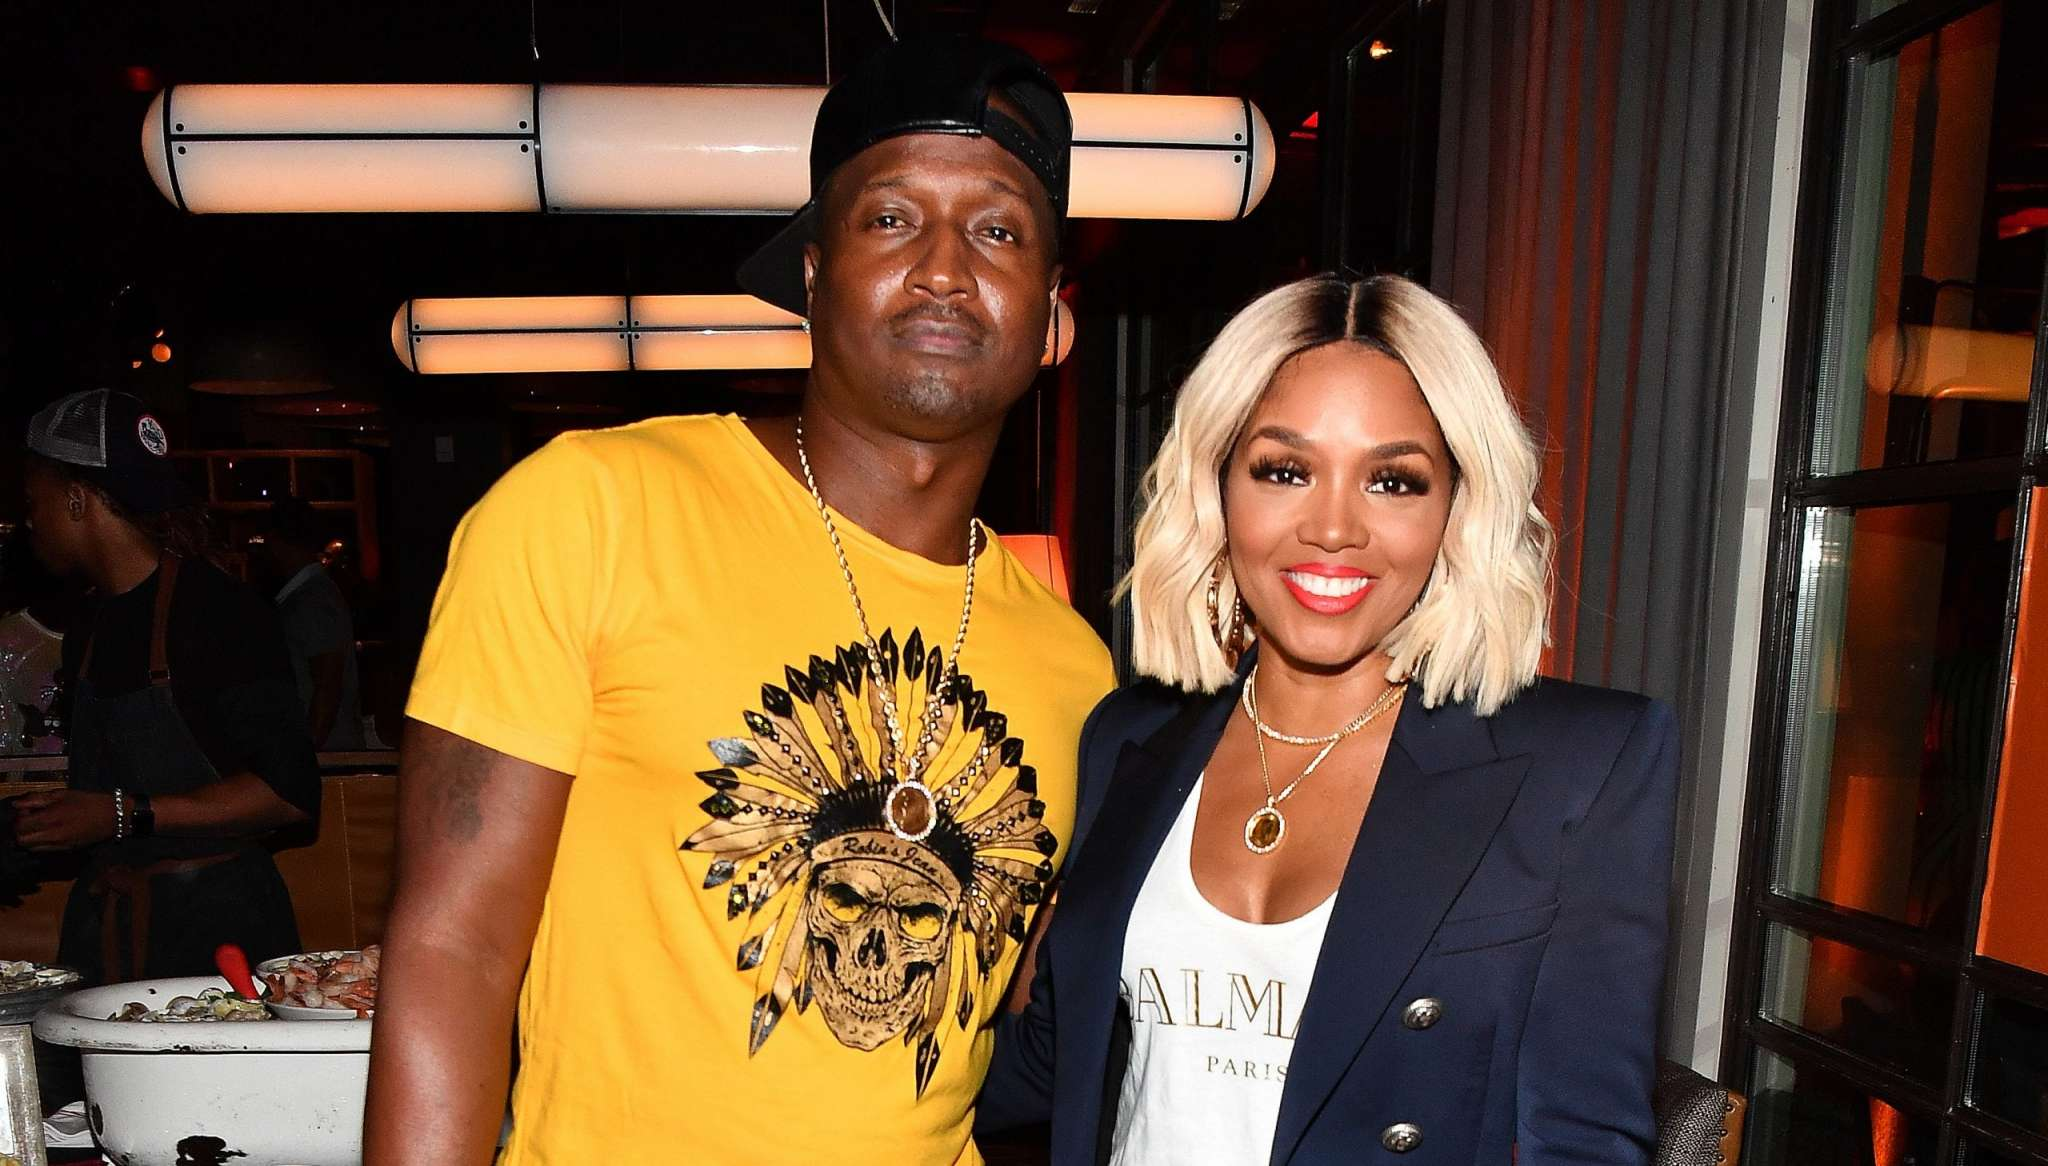 rasheeda-frost-gushes-over-kirk-frost-in-this-ig-post-see-the-couples-photo-together